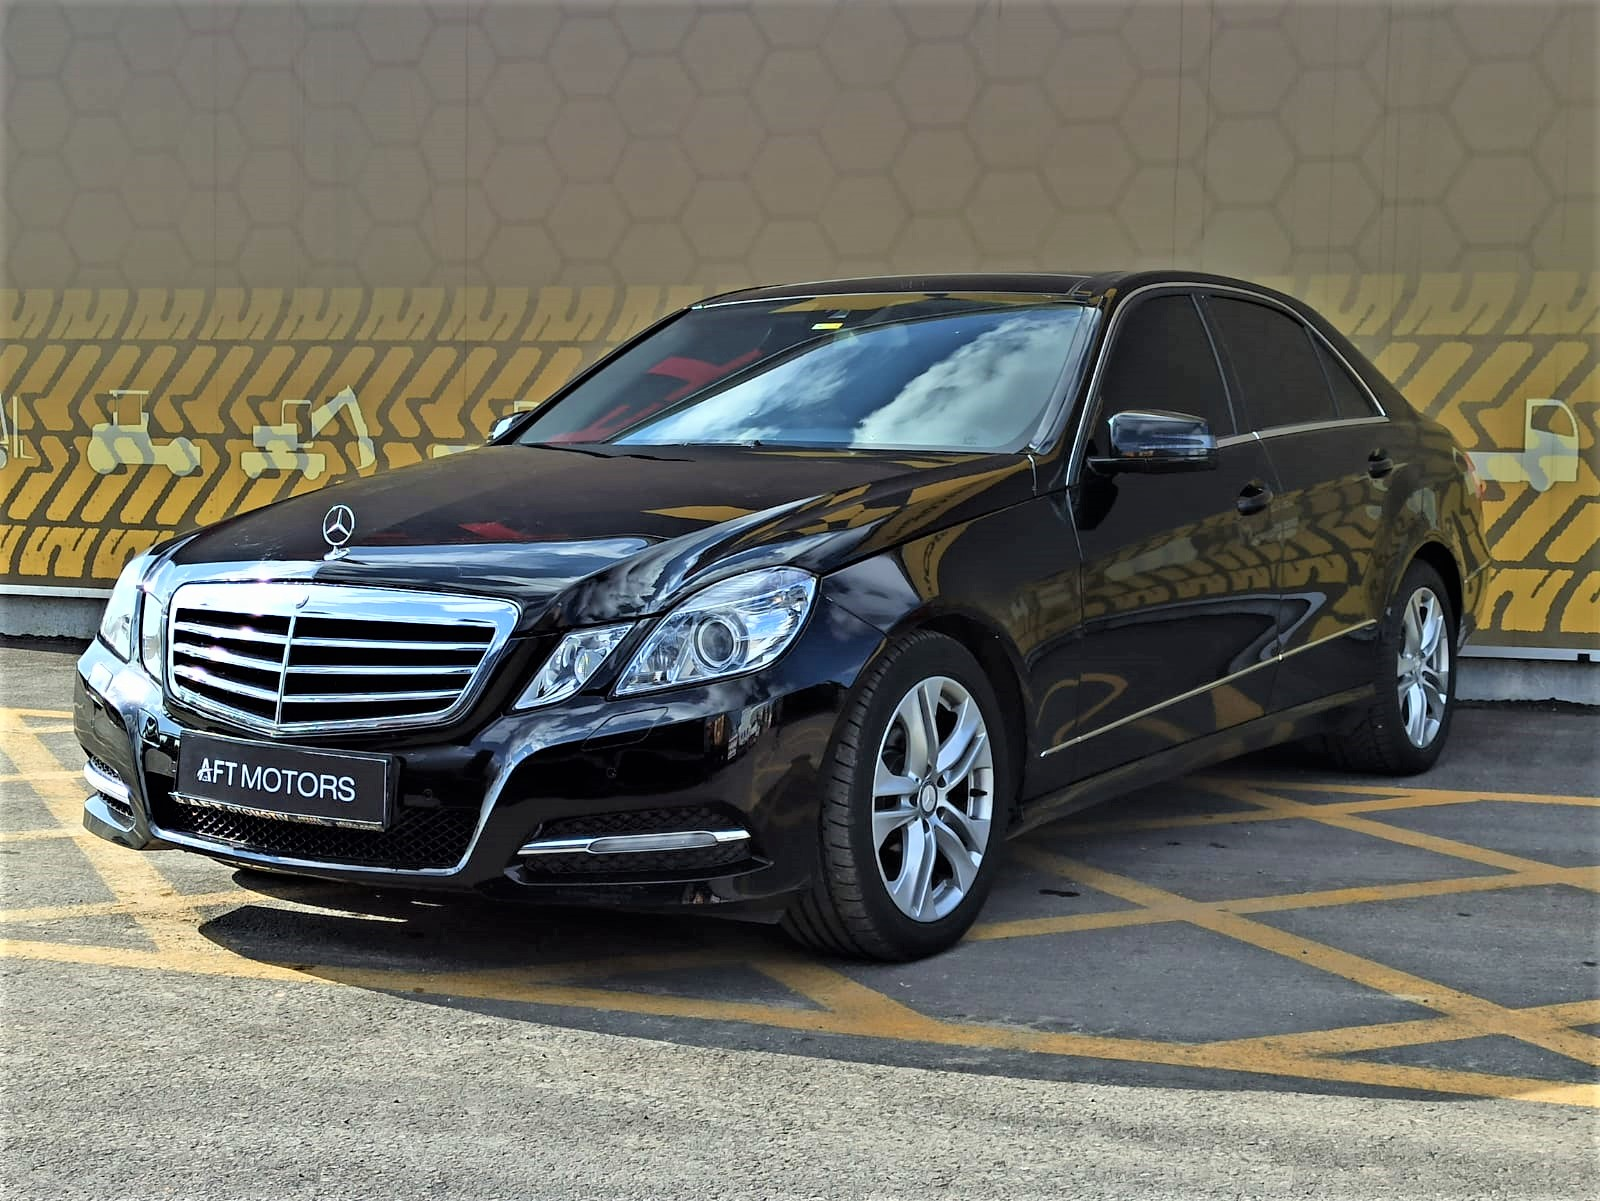 2012 MERCEDES E250 CDI 4MATIC ELITE AVANTGARDE  - Erçal Trucks